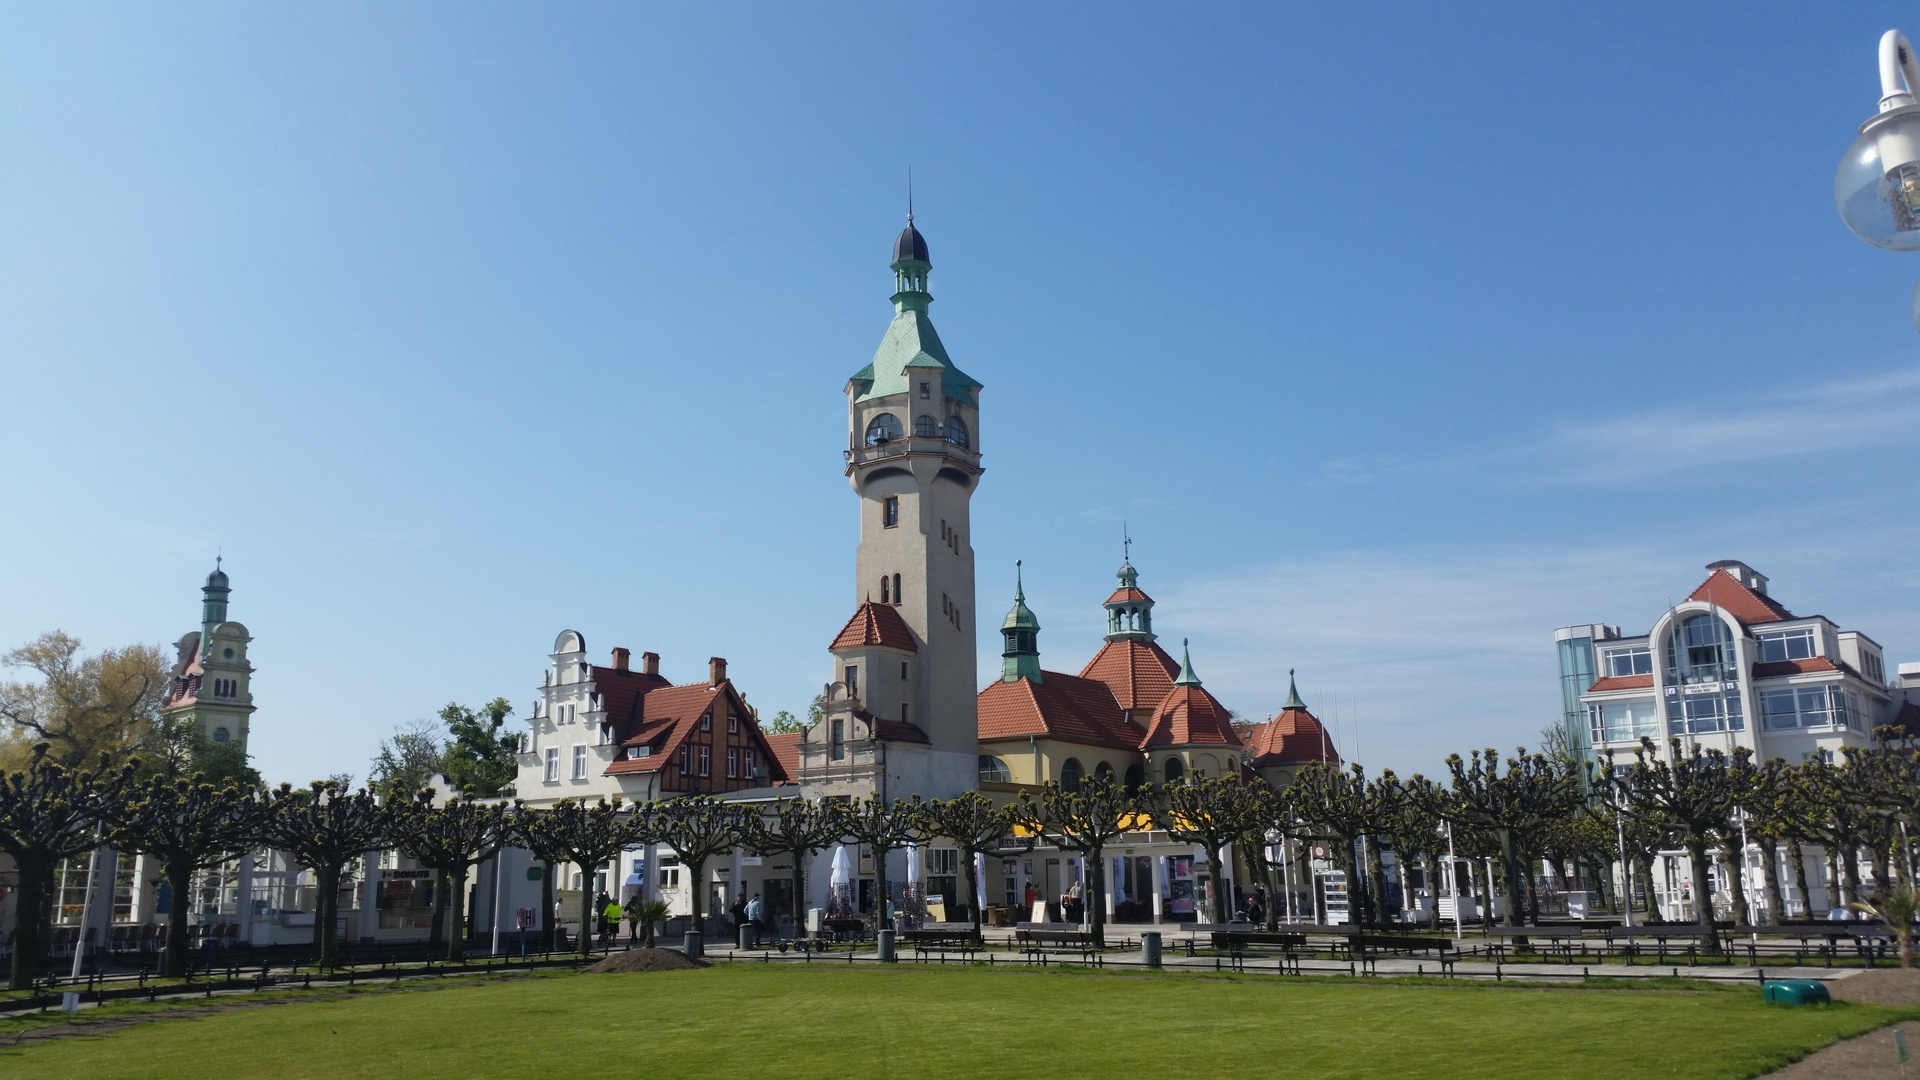 General 1920x1080 city Poland Sopot tower park resort